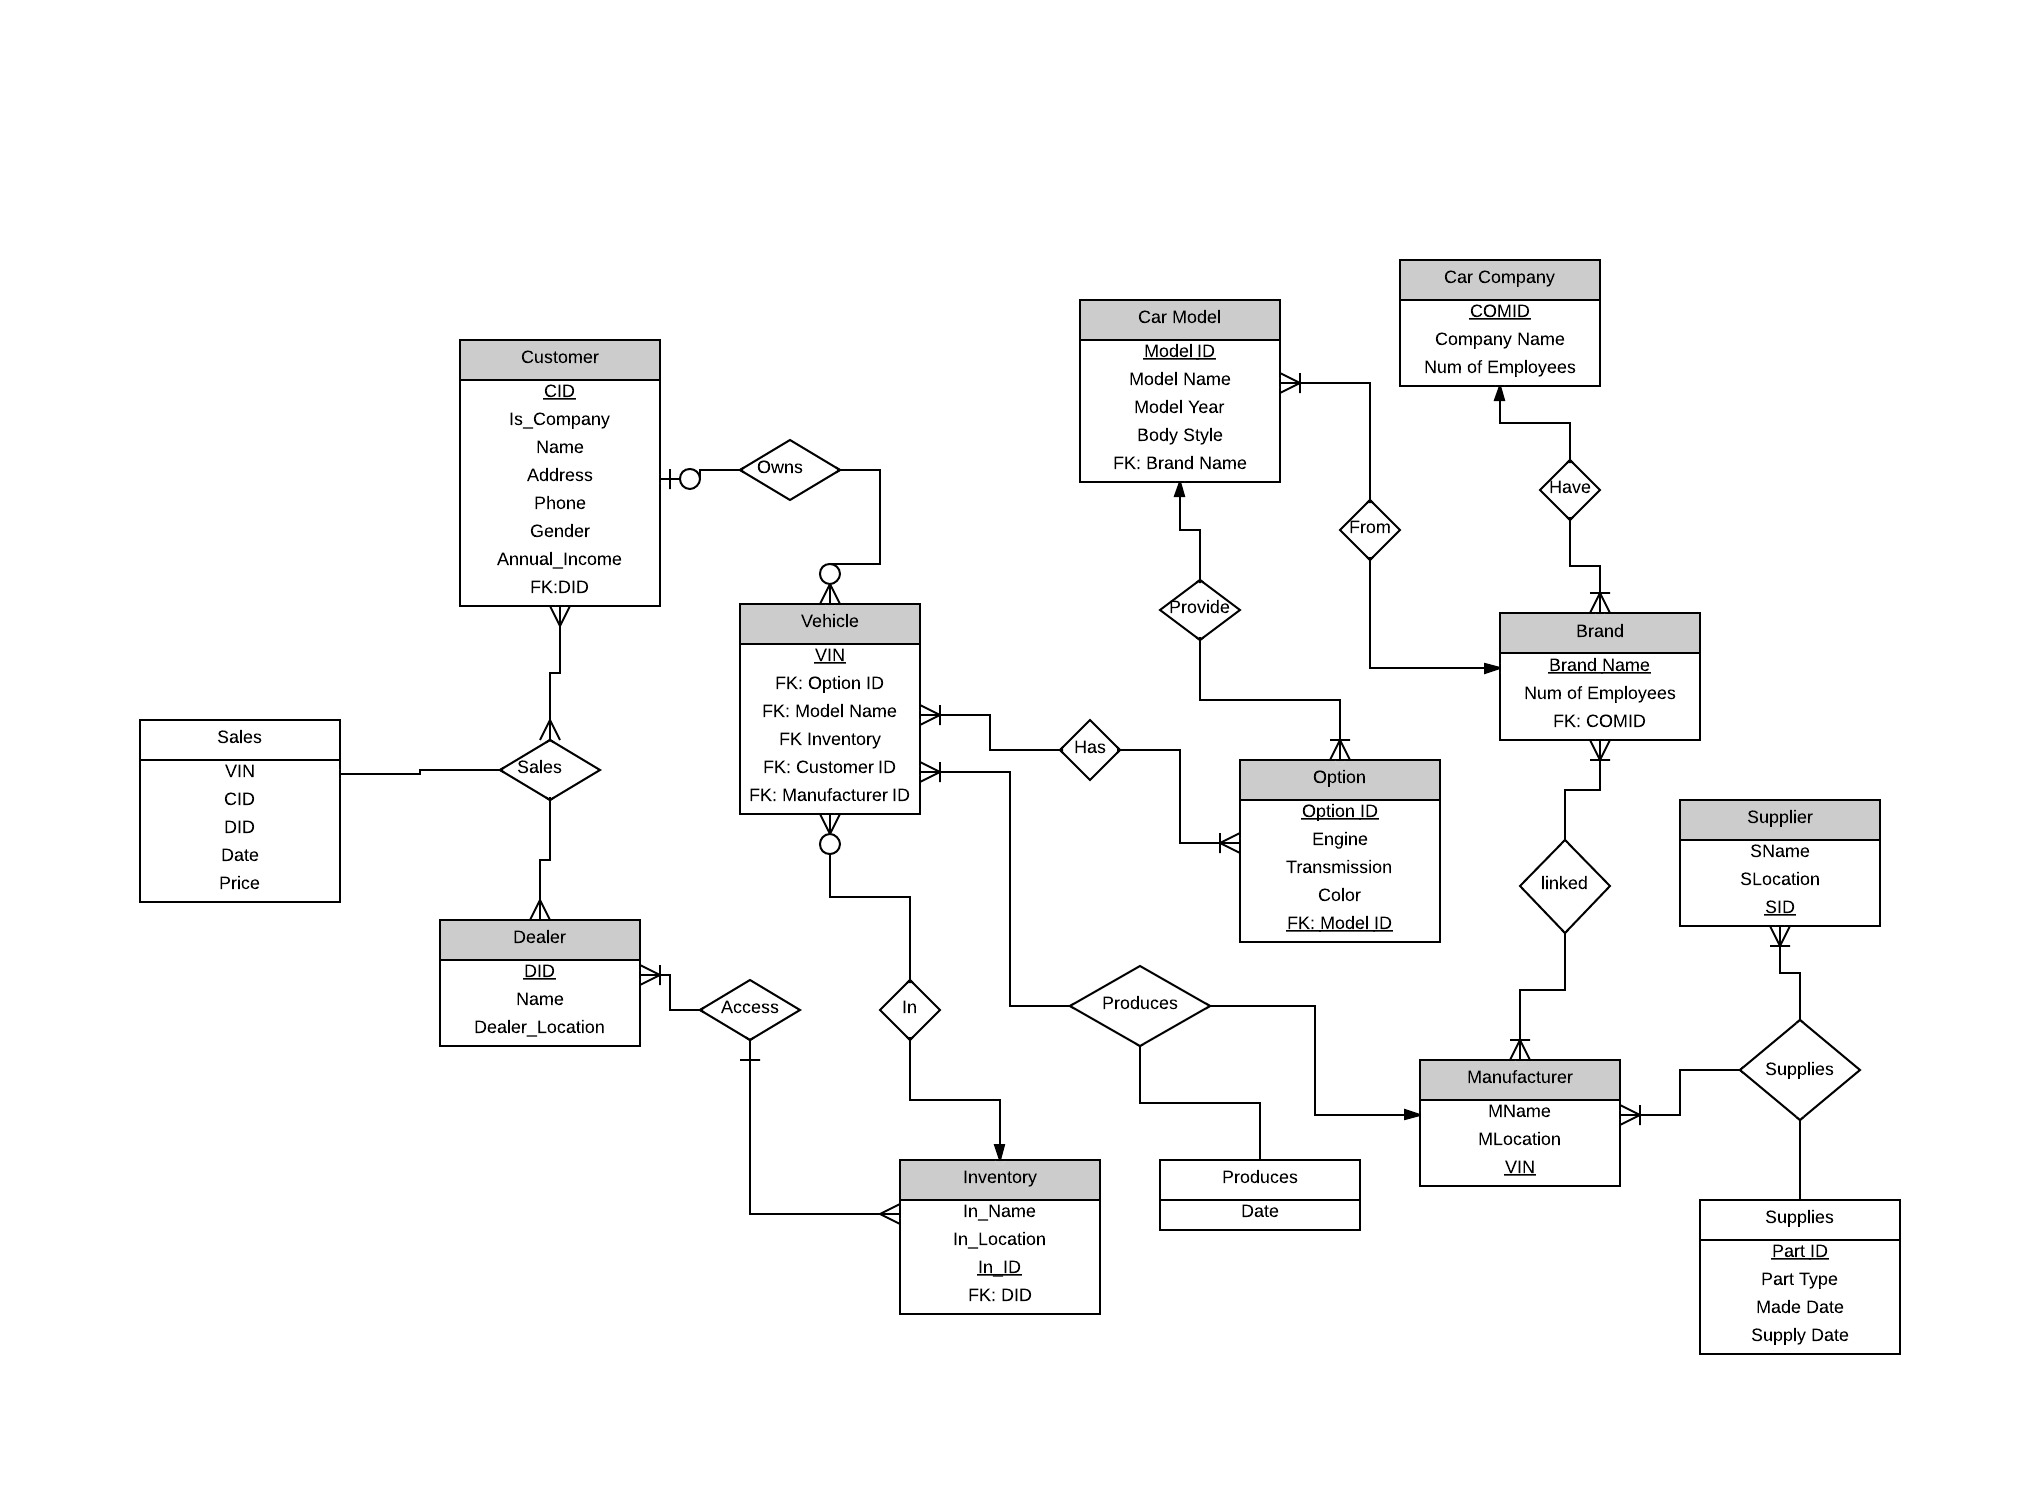 Need Help On An Er Diagram For An Automobile Company - Stack Overflow within Er Diagram Examples For Insurance